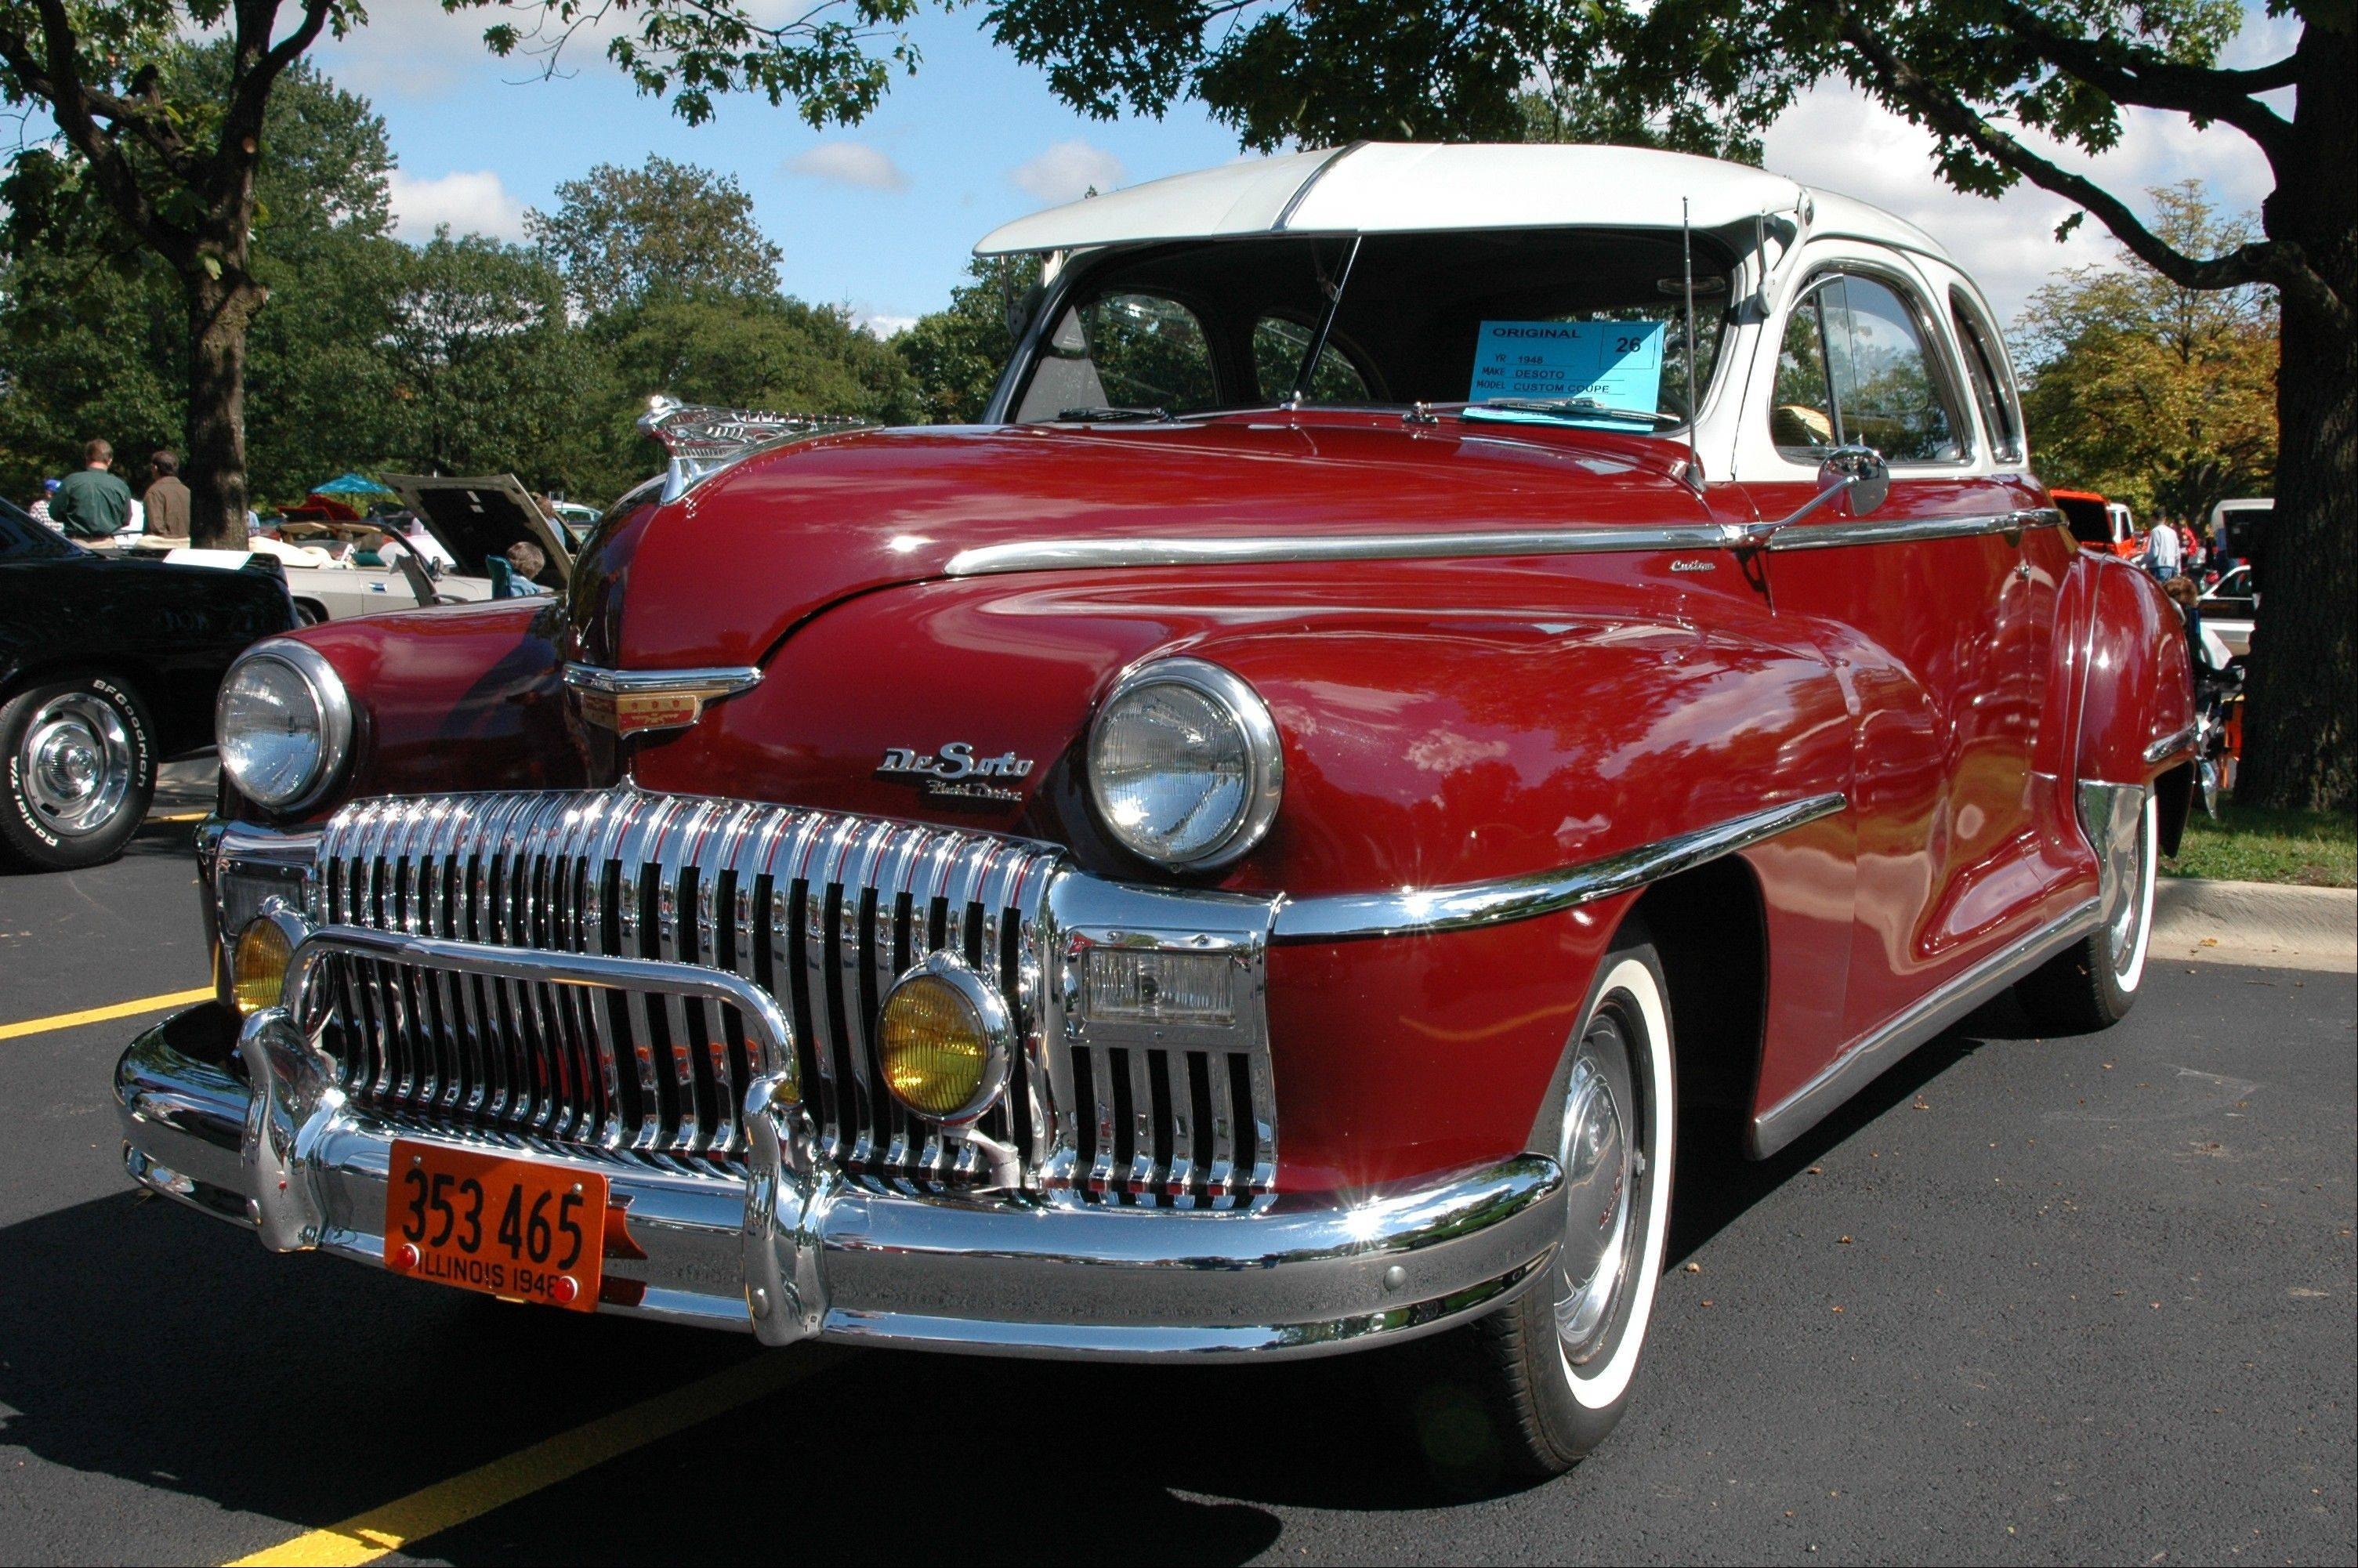 Car exhibitors compete for more than 90 awards at the Seventh Annual Cantigny Car Show at Cantigny Park in Wheaton.